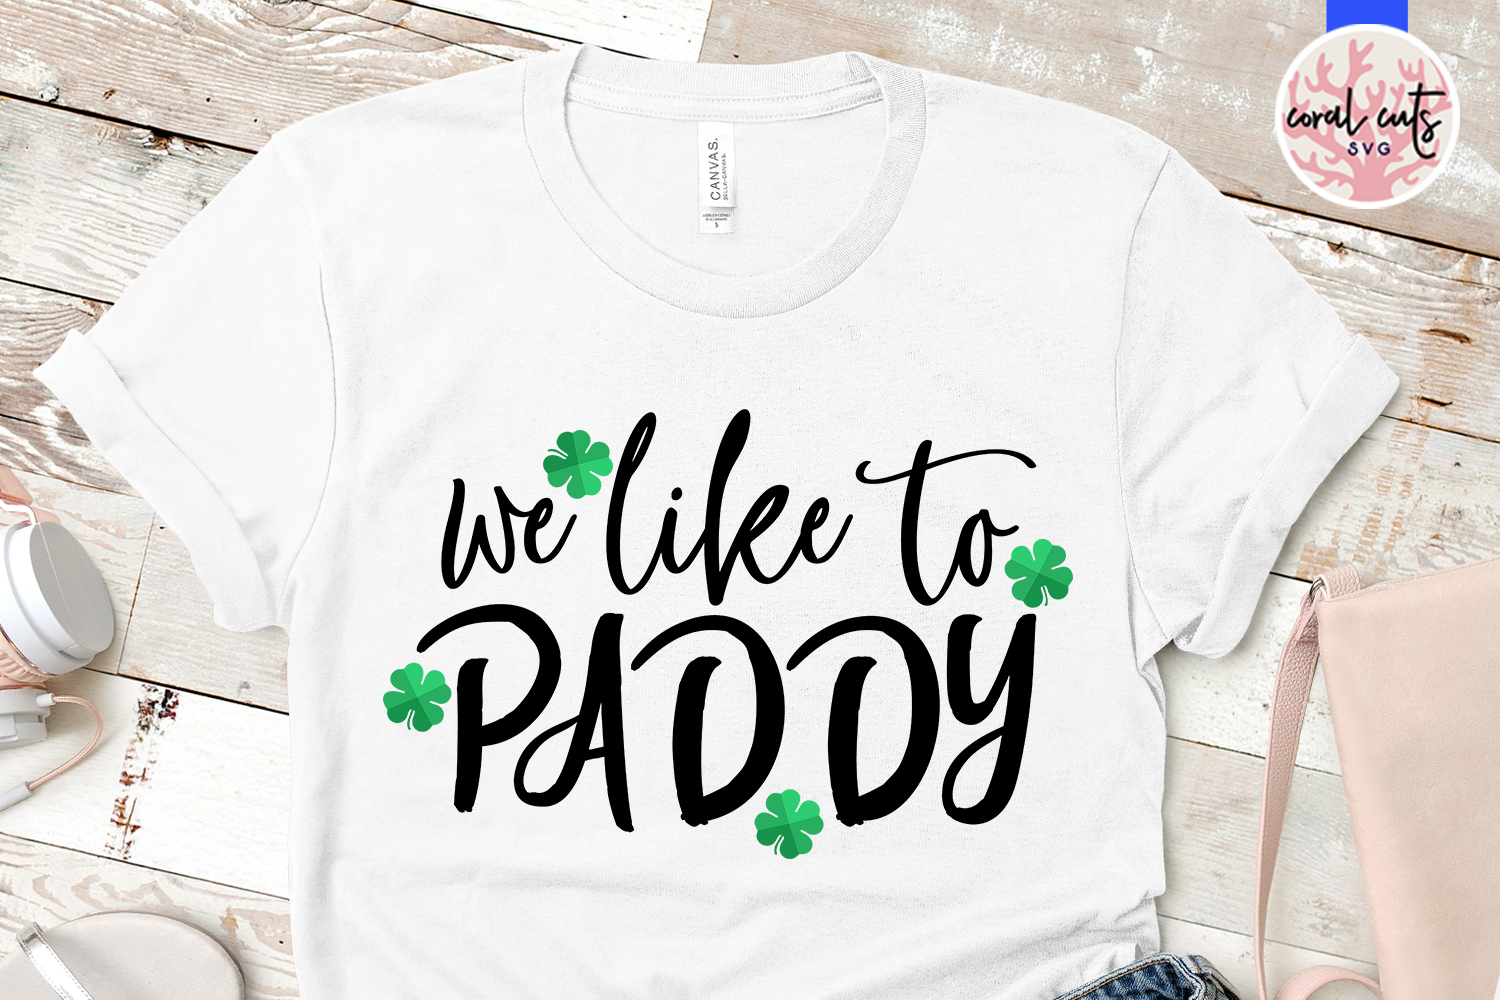 We like to paddy - St. Patrick's Day SVG EPS DXF PNG example image 2